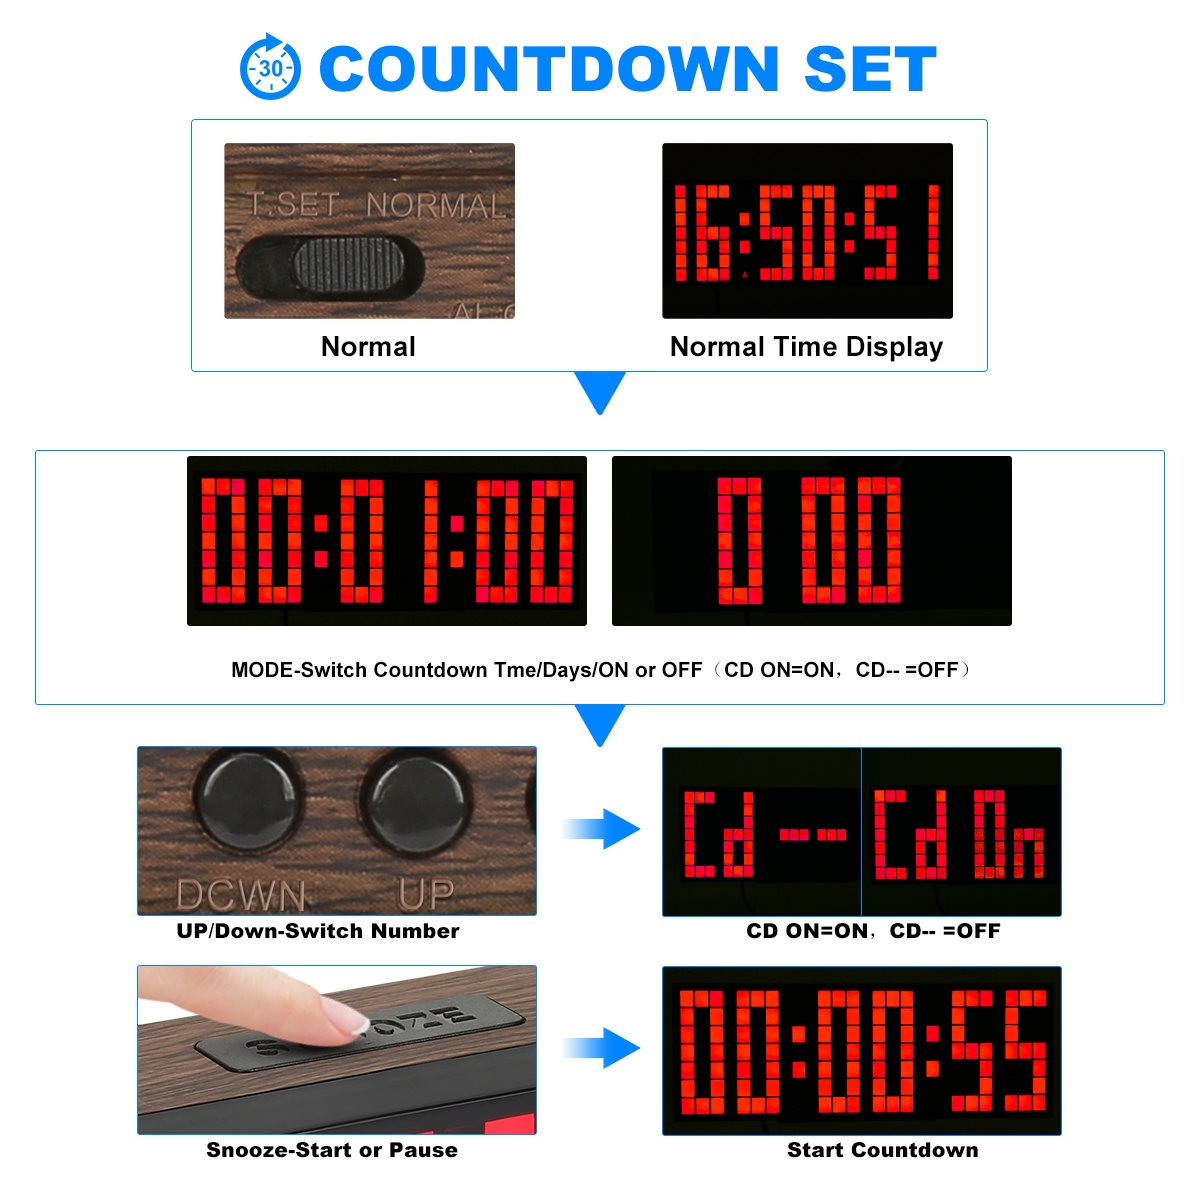 Red EC VISION Large Big Number Jumbo LED Snooze Wall Desk Alarm Clock Count Down Timer with Calendar 2018062303